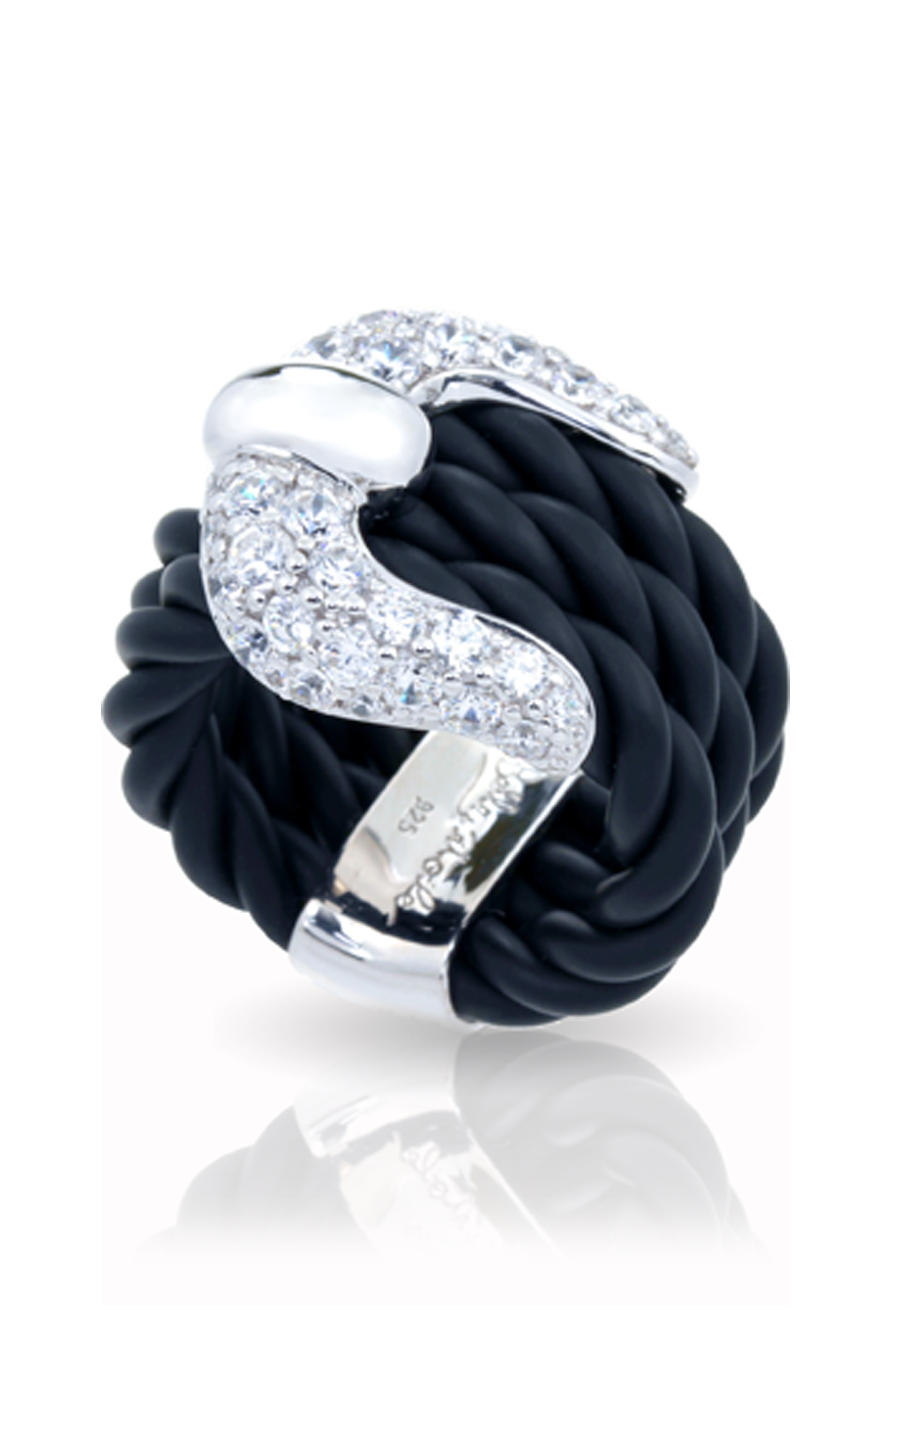 Belle Etoile Lasso Black Ring 01051010101-8 product image